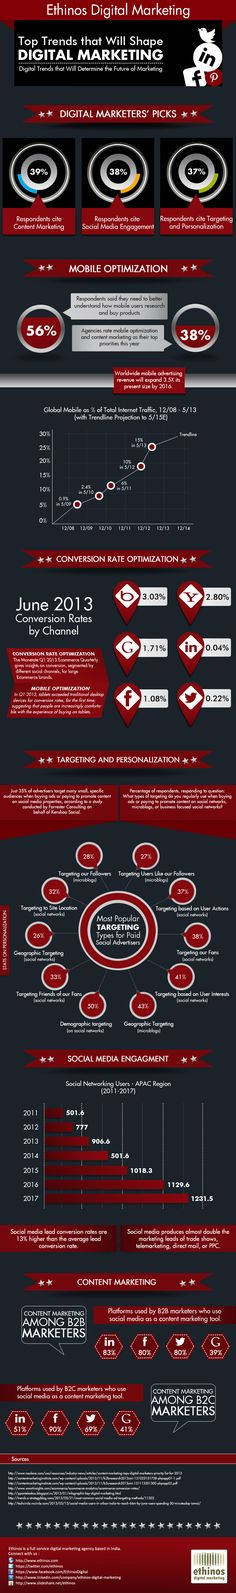 Top Trends that Will Shape Digital Marketing [Infographic]